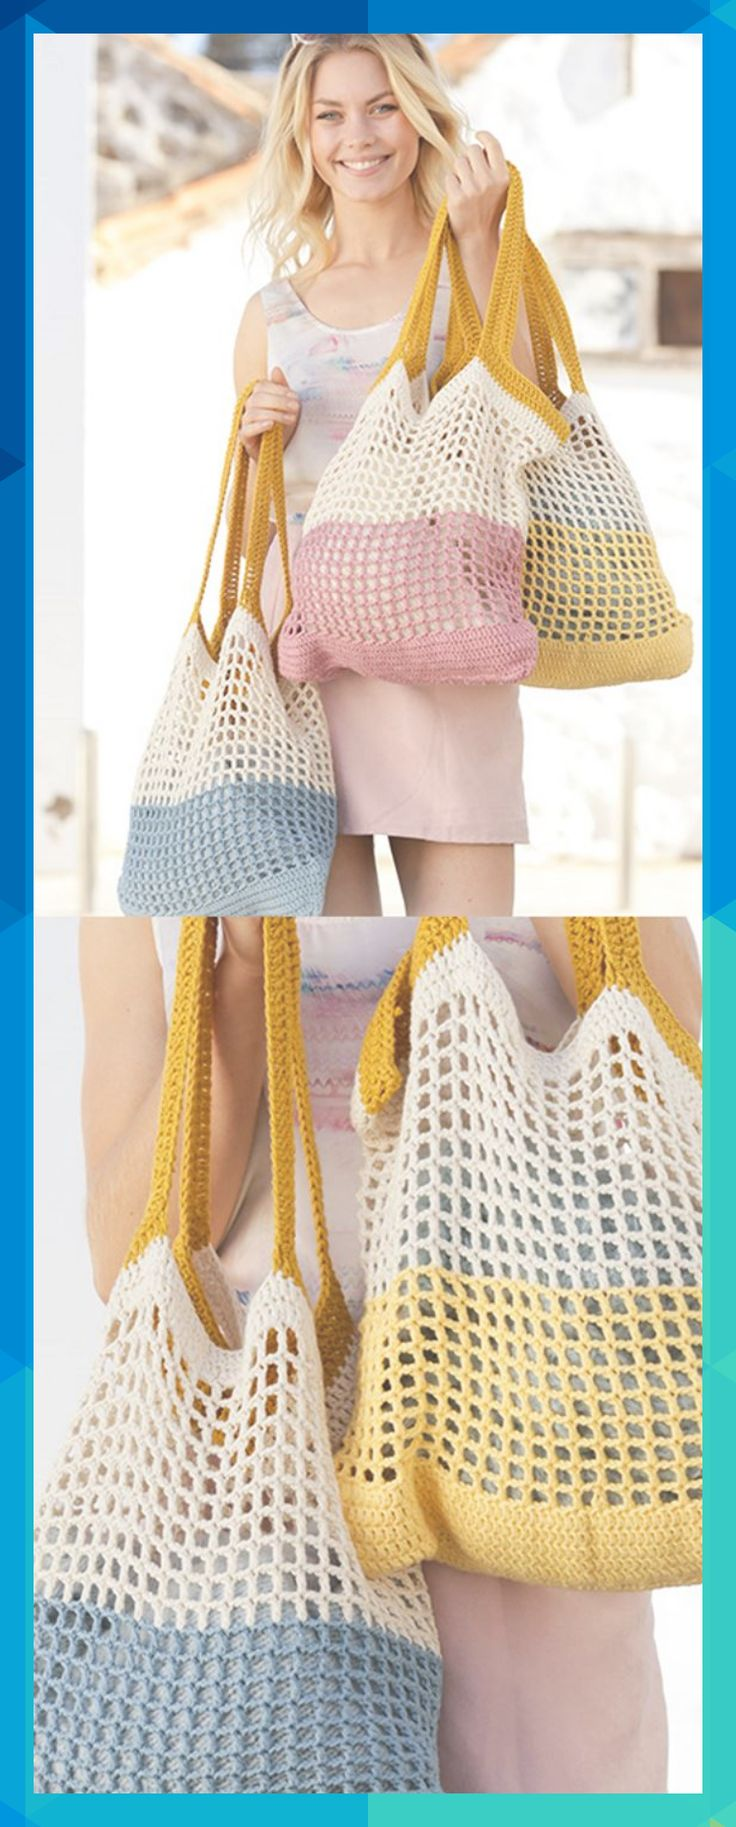 Free Crochet Pattern for a Beach Bag ⋆ Crochet Kingdom #pfeffermable973